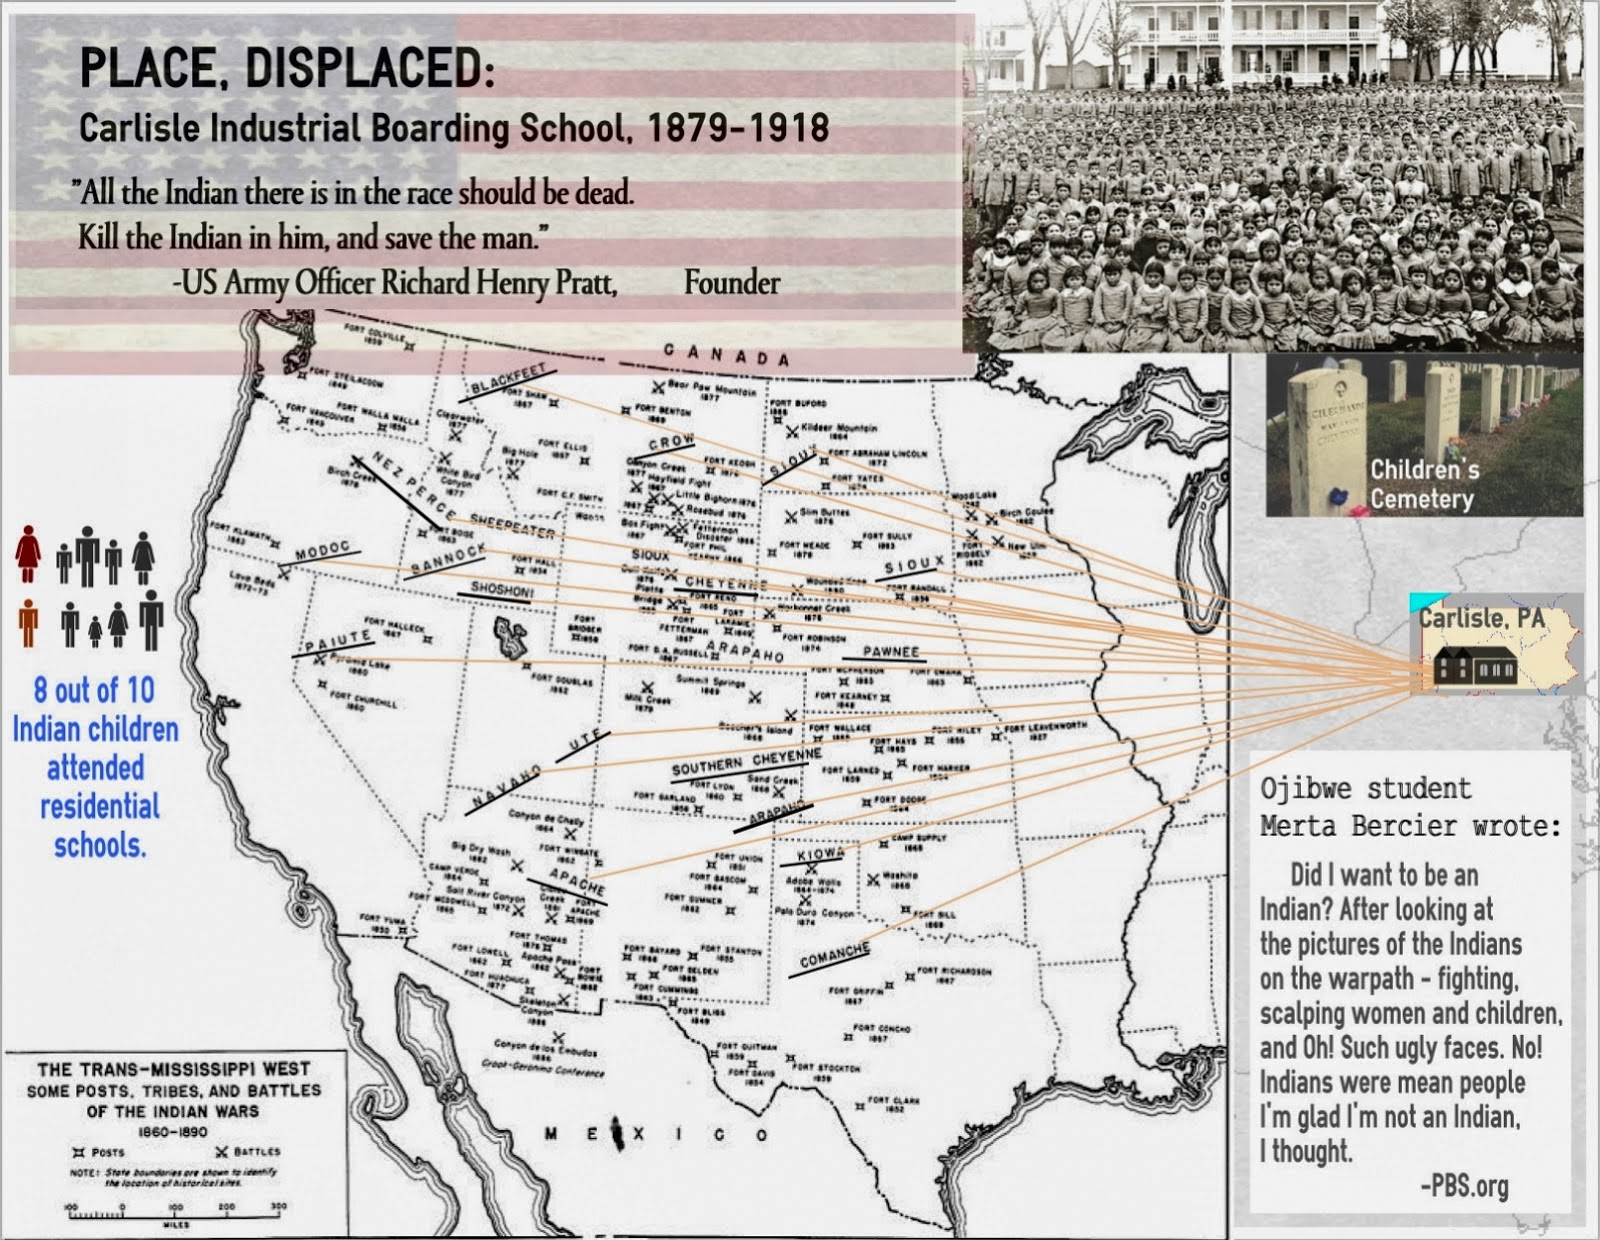 this infographic gives an idea of the diaspora of native children accompanying us efforts to acculturate and assimilate american indians through